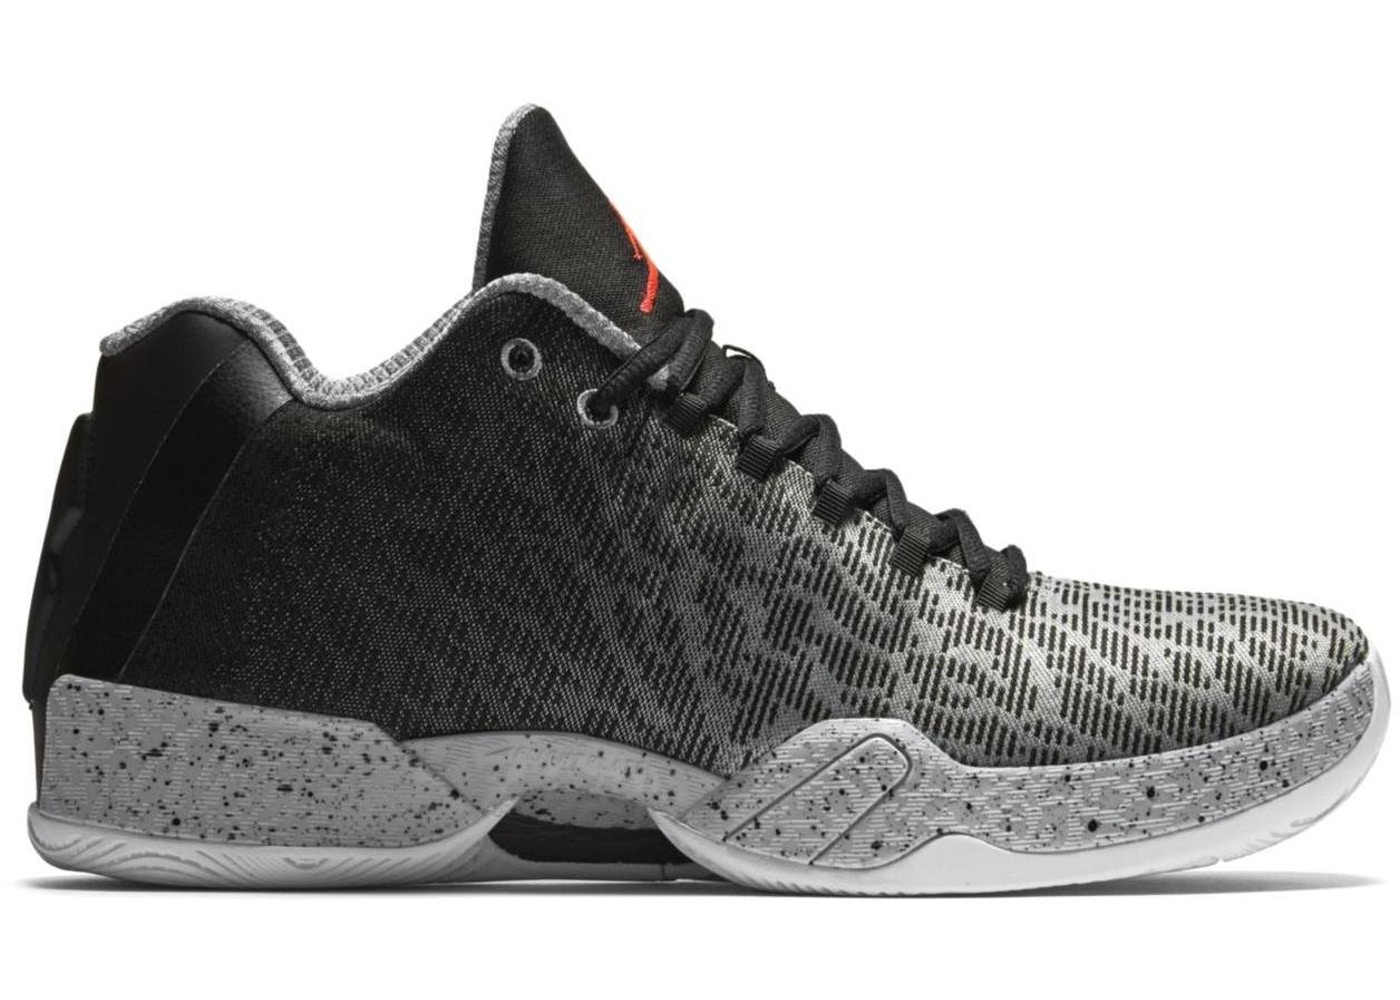 outlet store 3a360 0be35 Buy Air Jordan 29 Shoes   Deadstock Sneakers